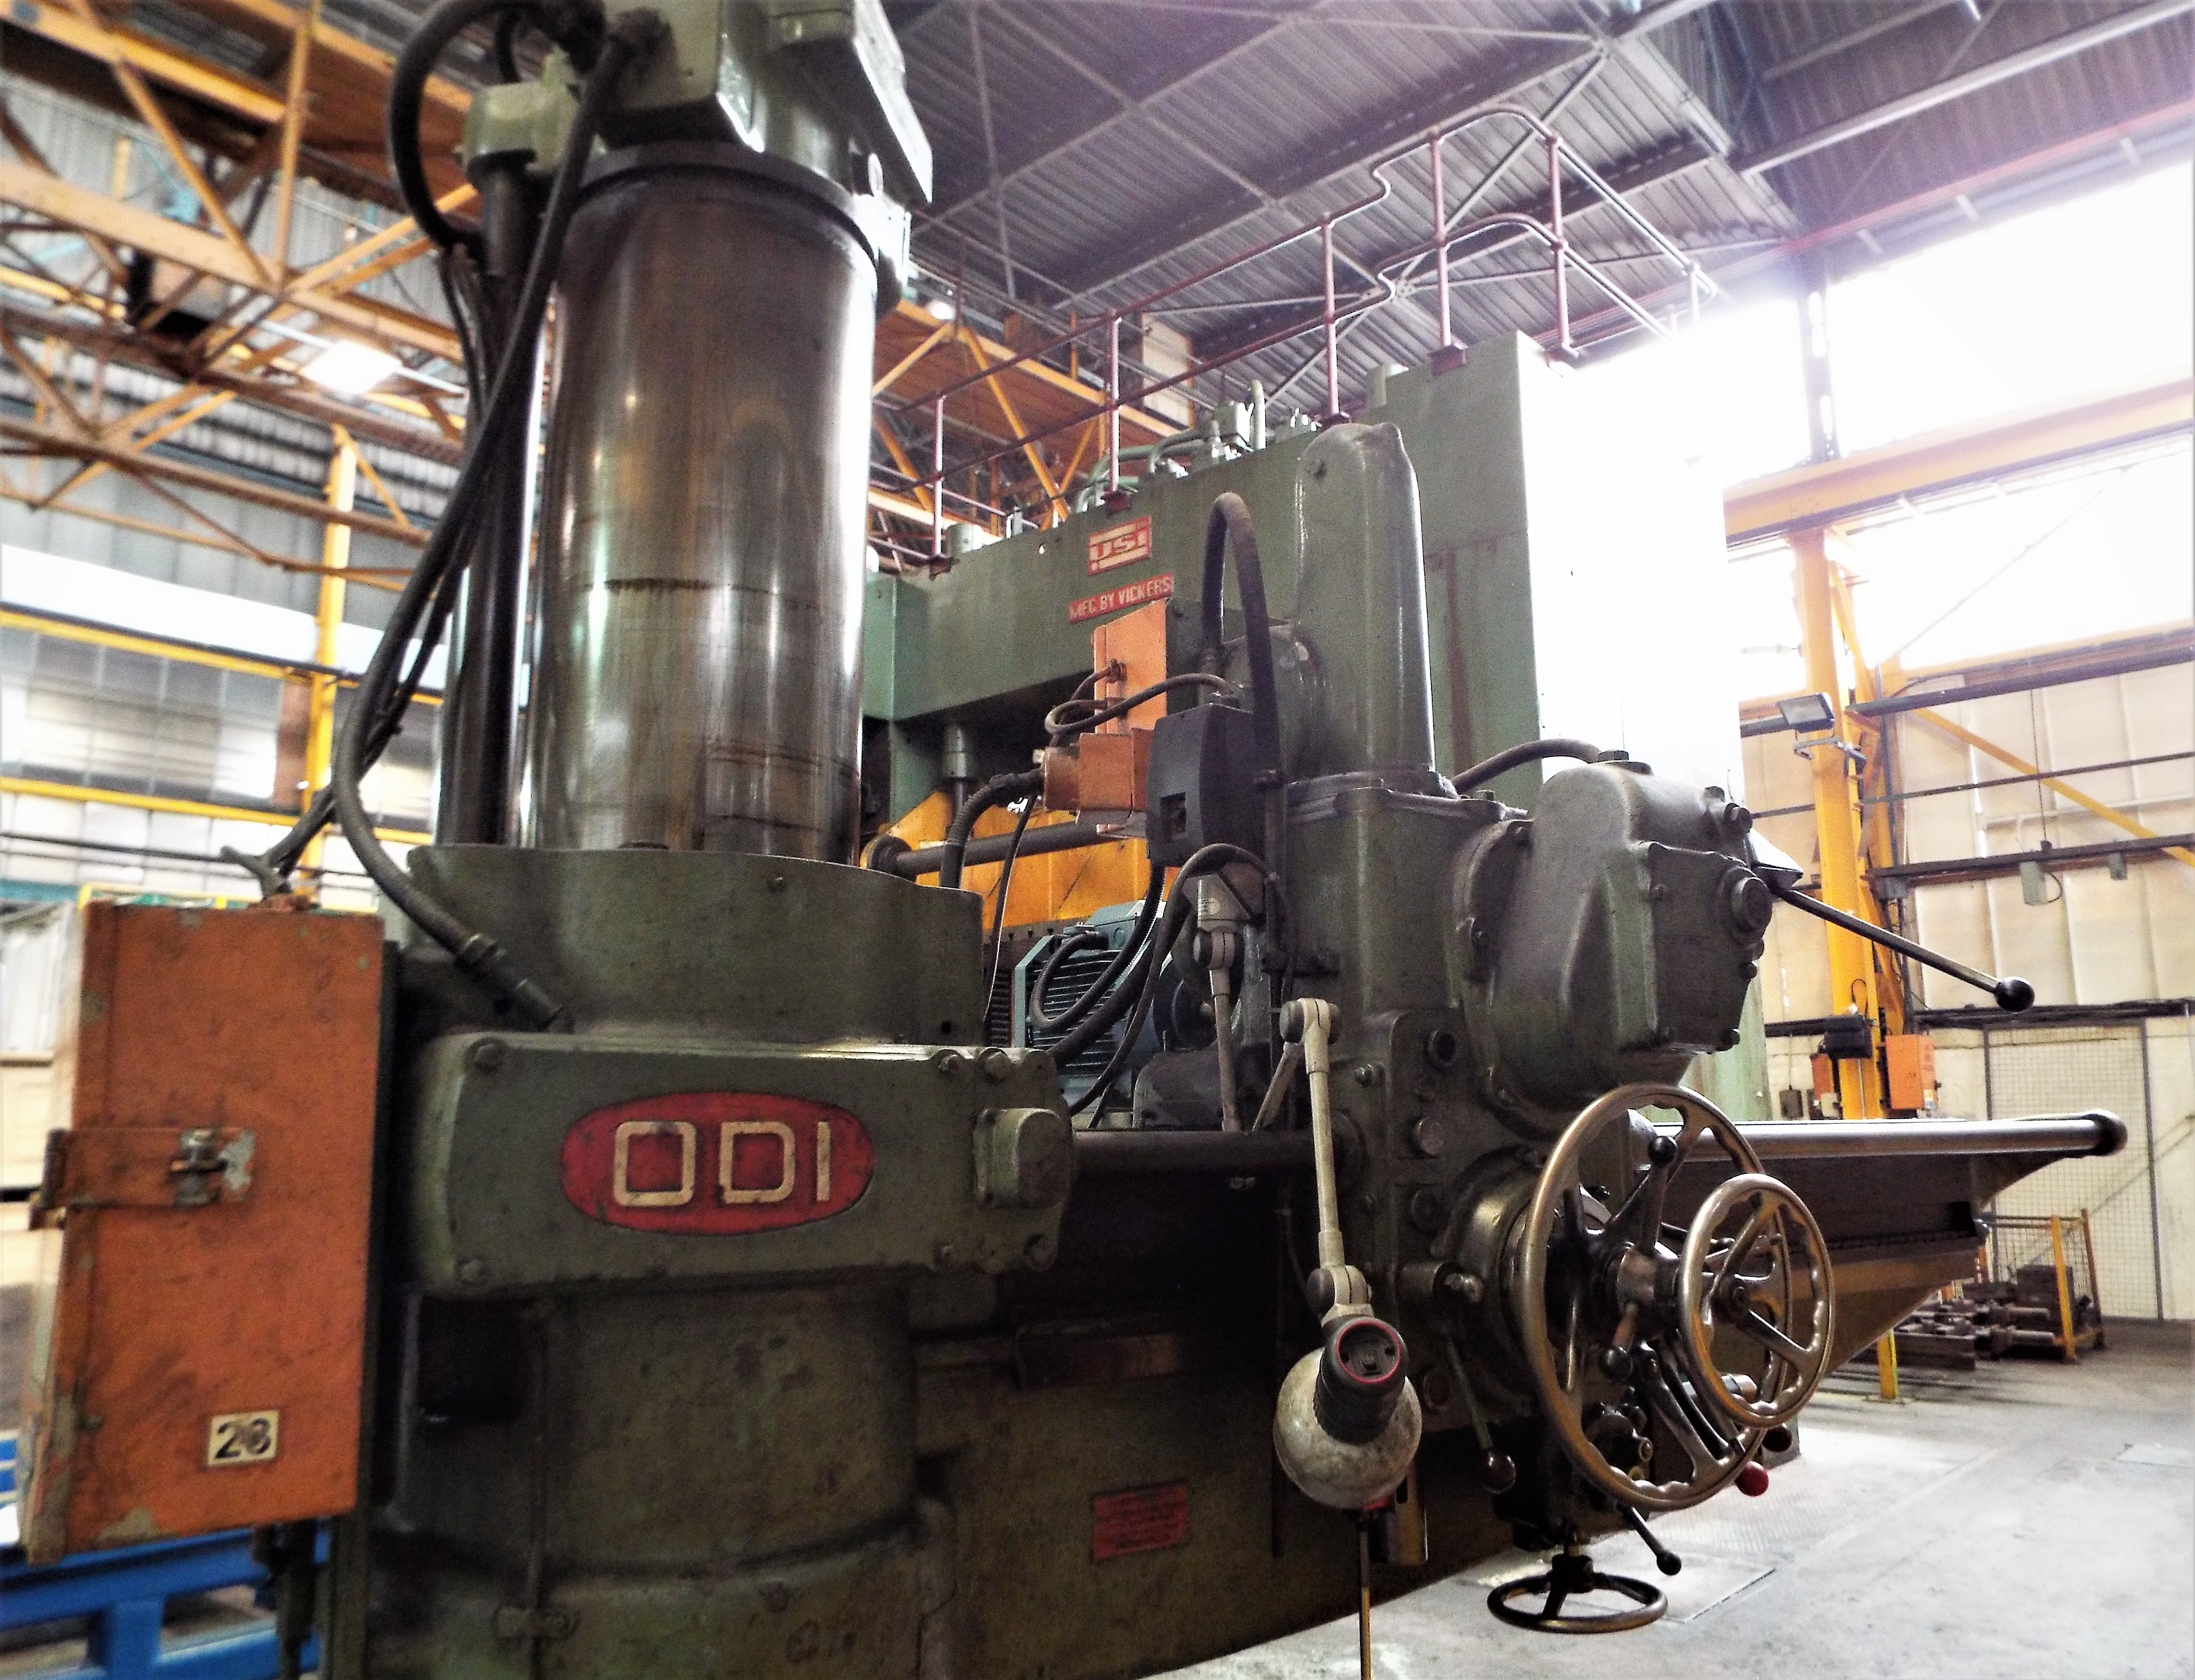 Lot 13 - Asquith ODI Radial Arm Drill